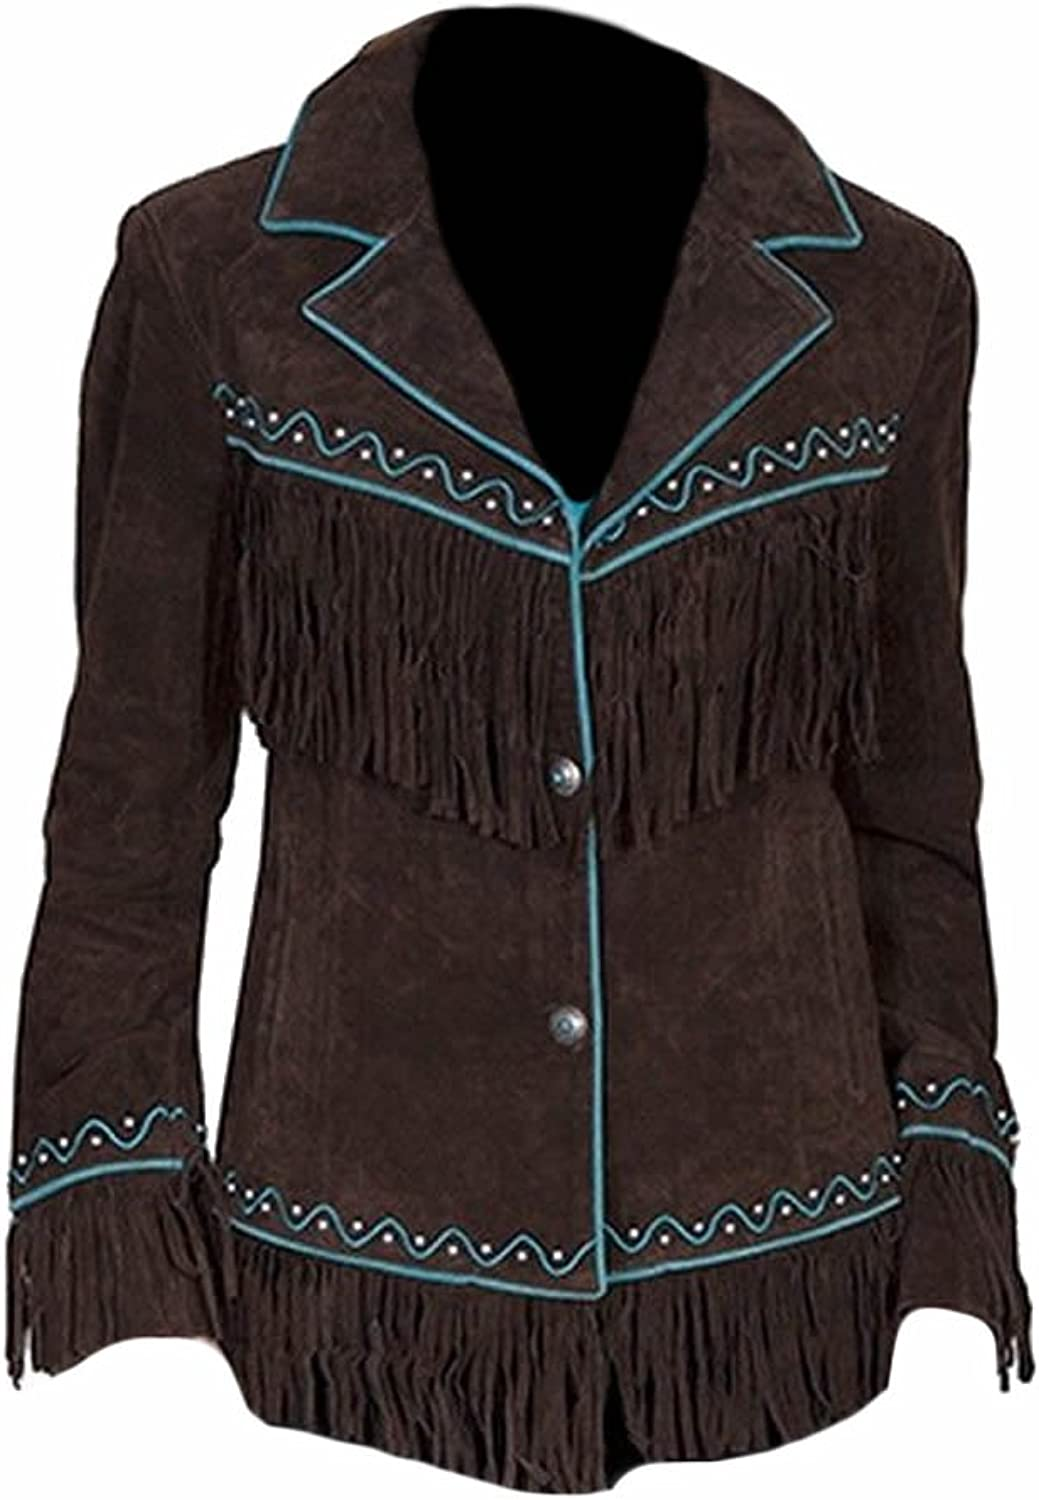 Classyak Women's Western Style Cowgirl Suede Leather Quality Fringed Jacket